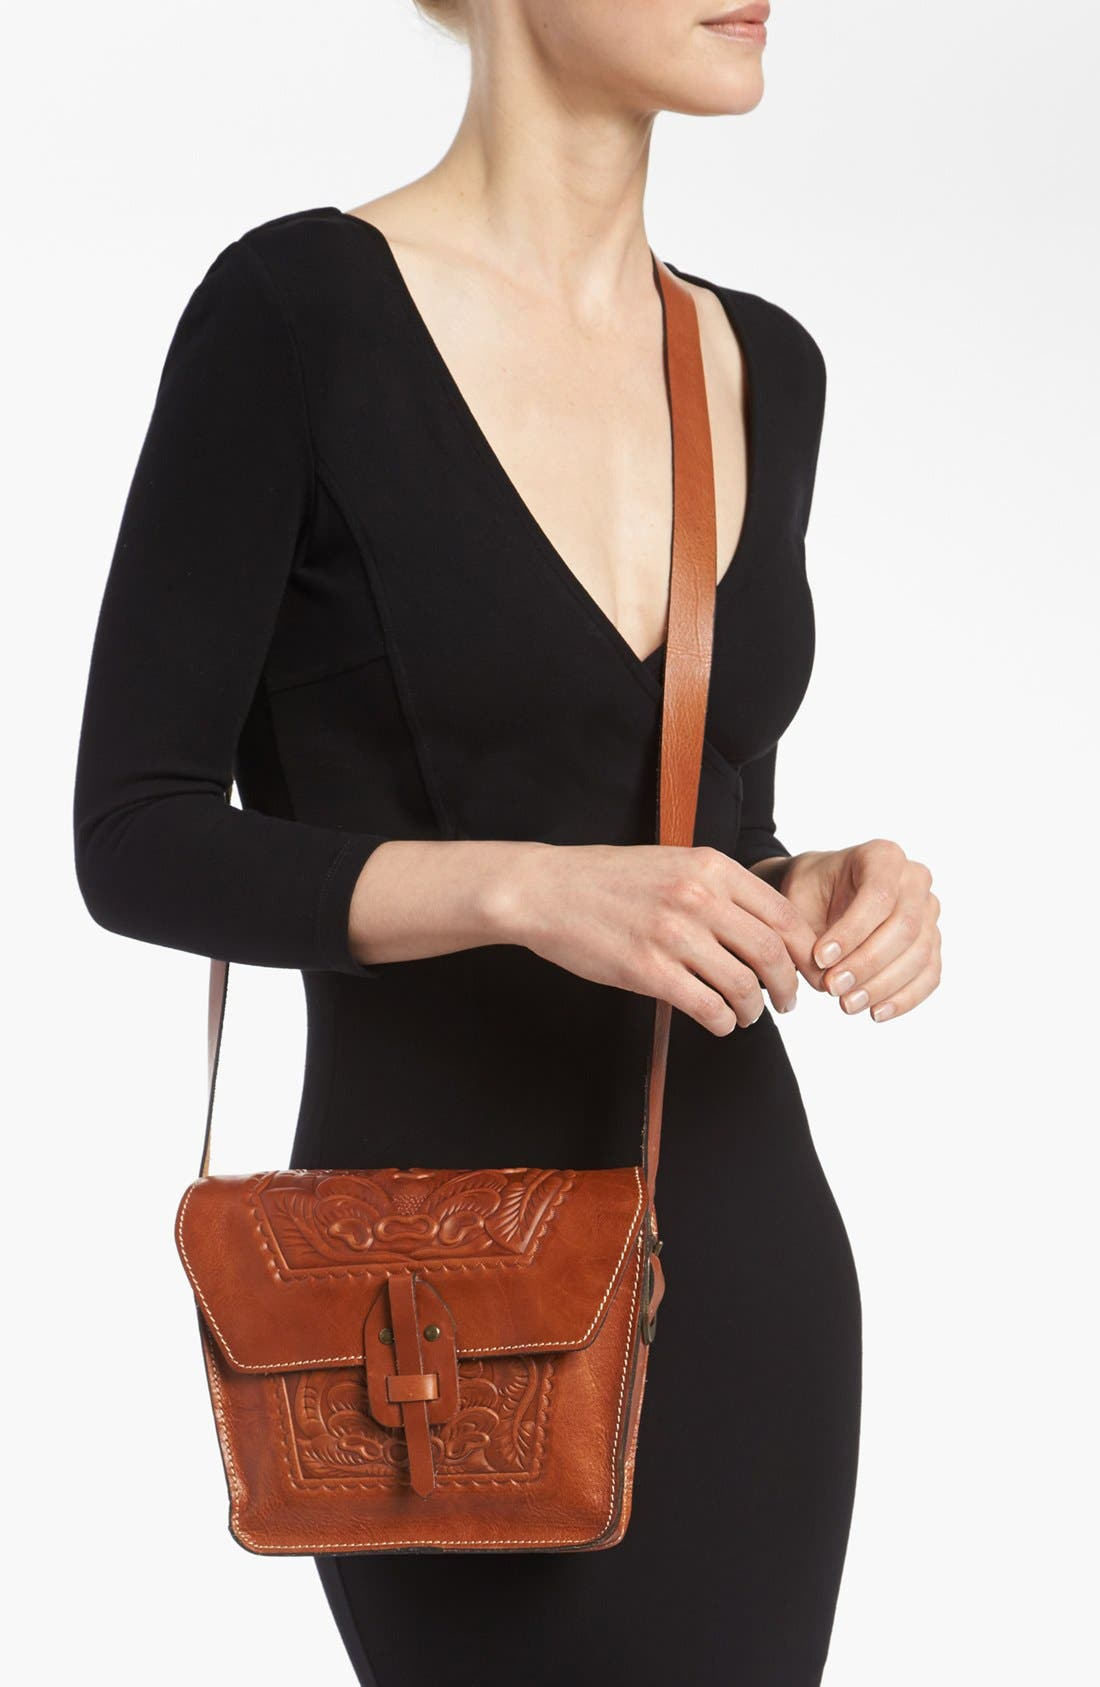 'Marciano' Leather Crossbody Bag,                             Alternate thumbnail 4, color,                             200